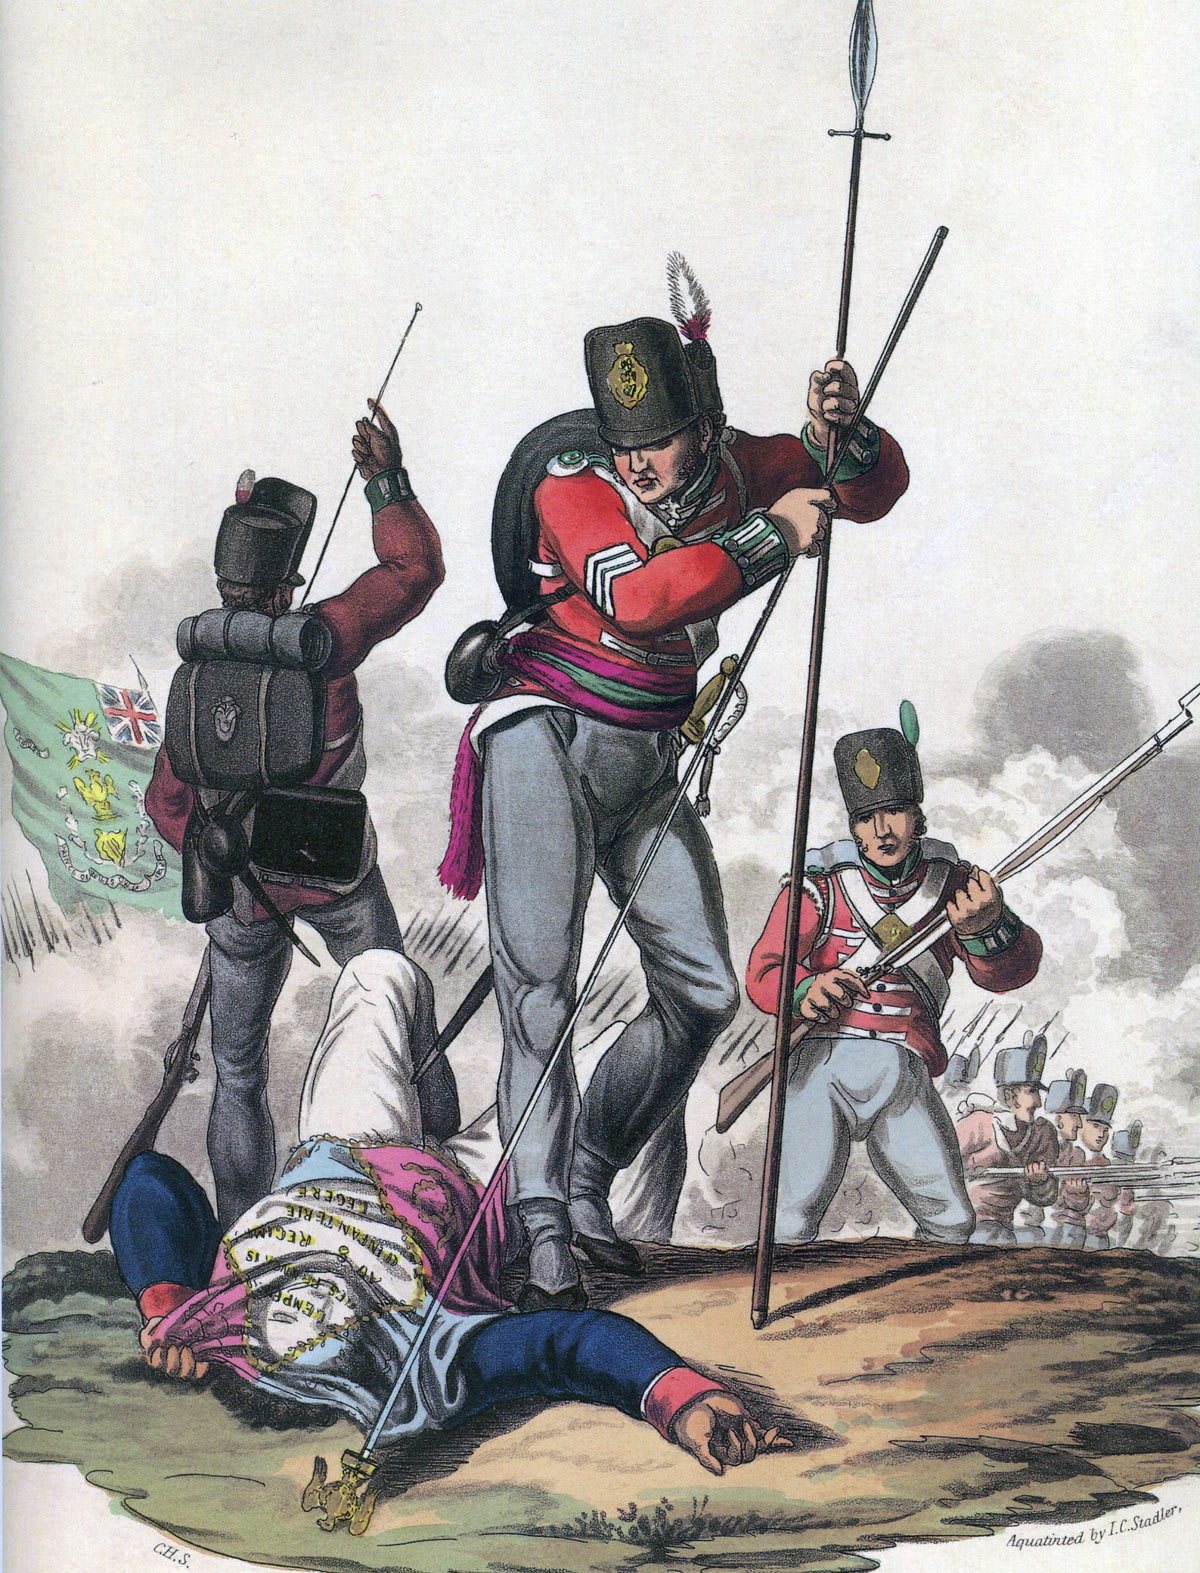 Sergeant Masterson of the 87th Regiment taking the Eagle of the French 8th of the Line at the Battle of Barossa or Chiclana fought on 5th March 1811 in the Peninsular War: picture by Hamilton Smith